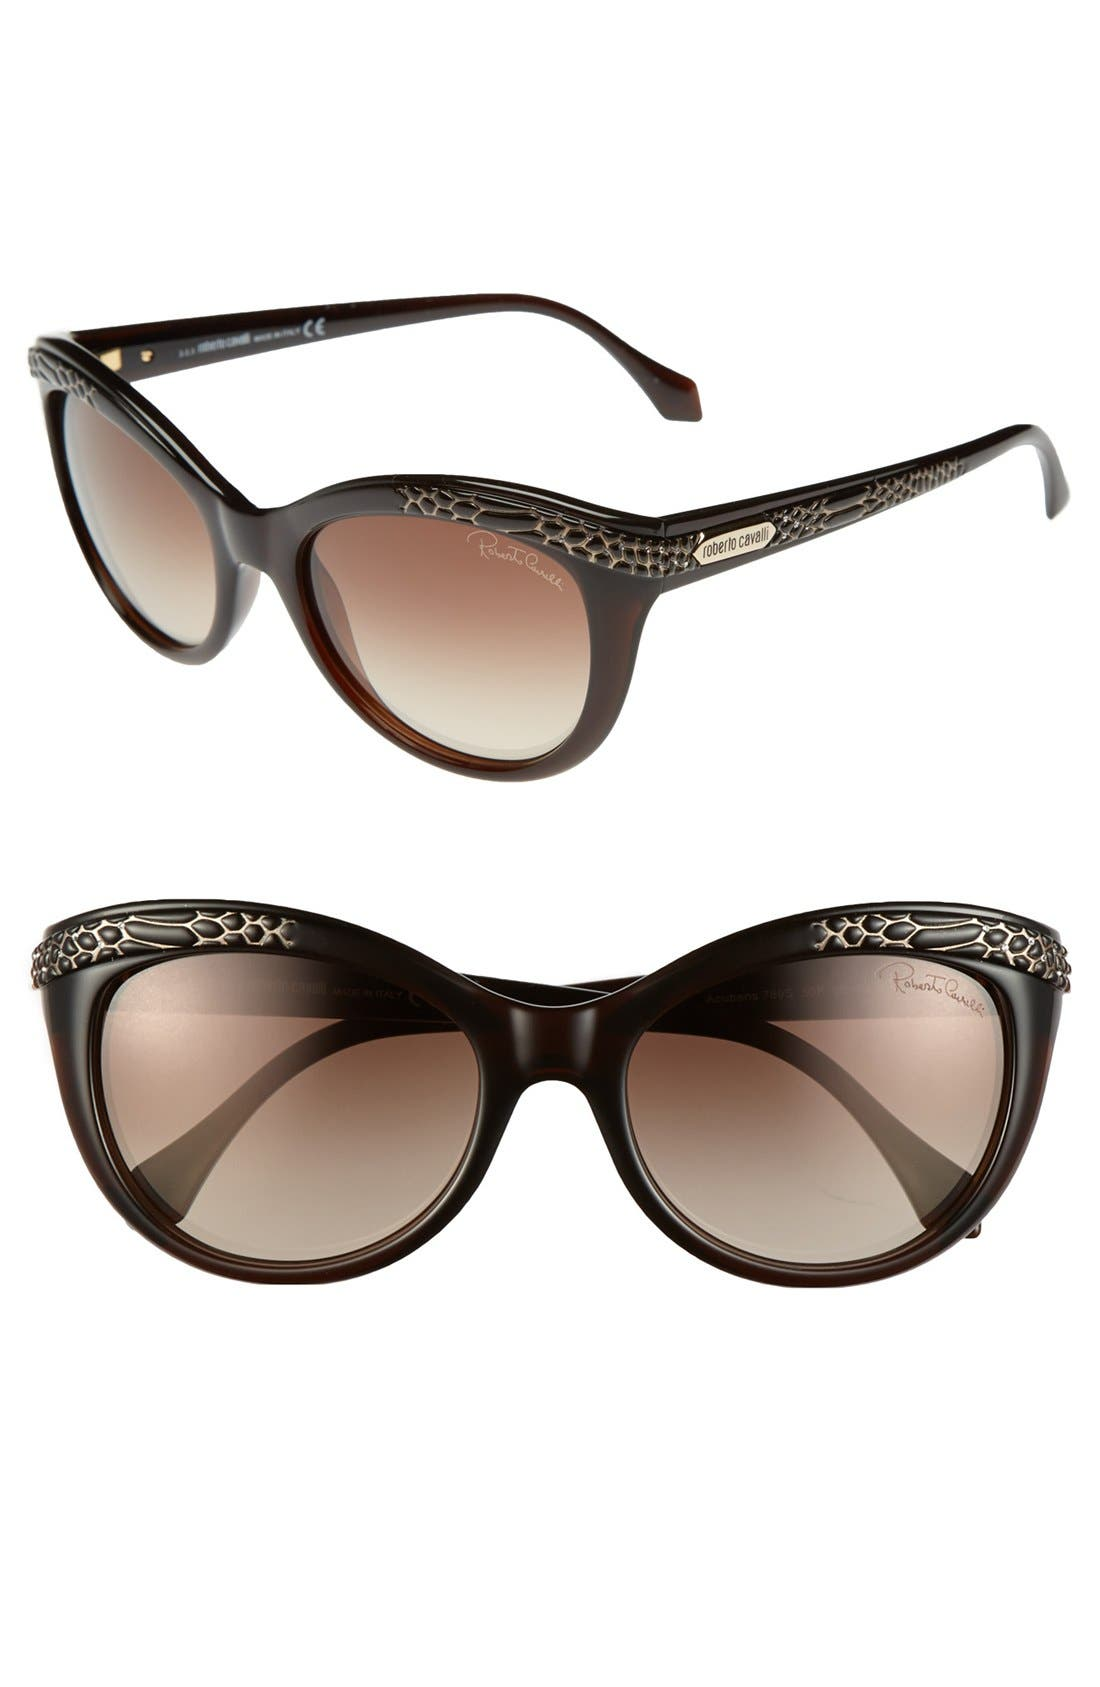 Alternate Image 1 Selected - Roberto Cavalli 'Acubens' 56mm Sunglasses